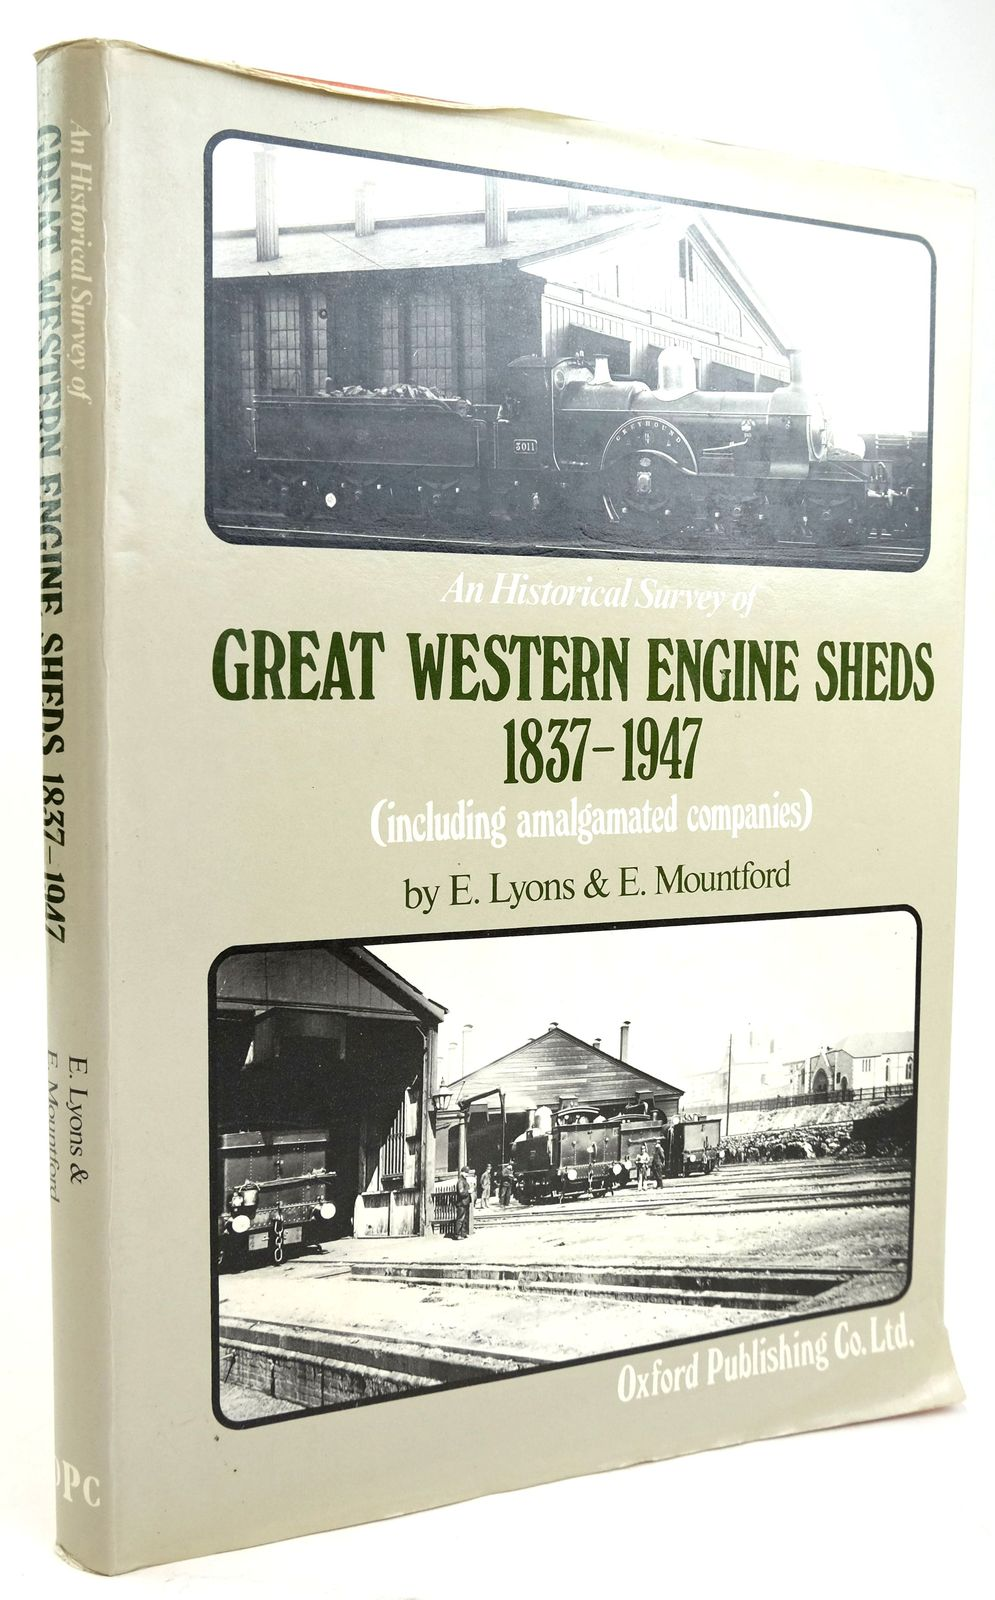 Photo of AN HISTORICAL SURVEY OF GREAT WESTERN ENGINE SHEDS 1837-1947 written by Lyons, E.T. Mountford, Eric R. published by Oxford Publishing Co (STOCK CODE: 1820188)  for sale by Stella & Rose's Books